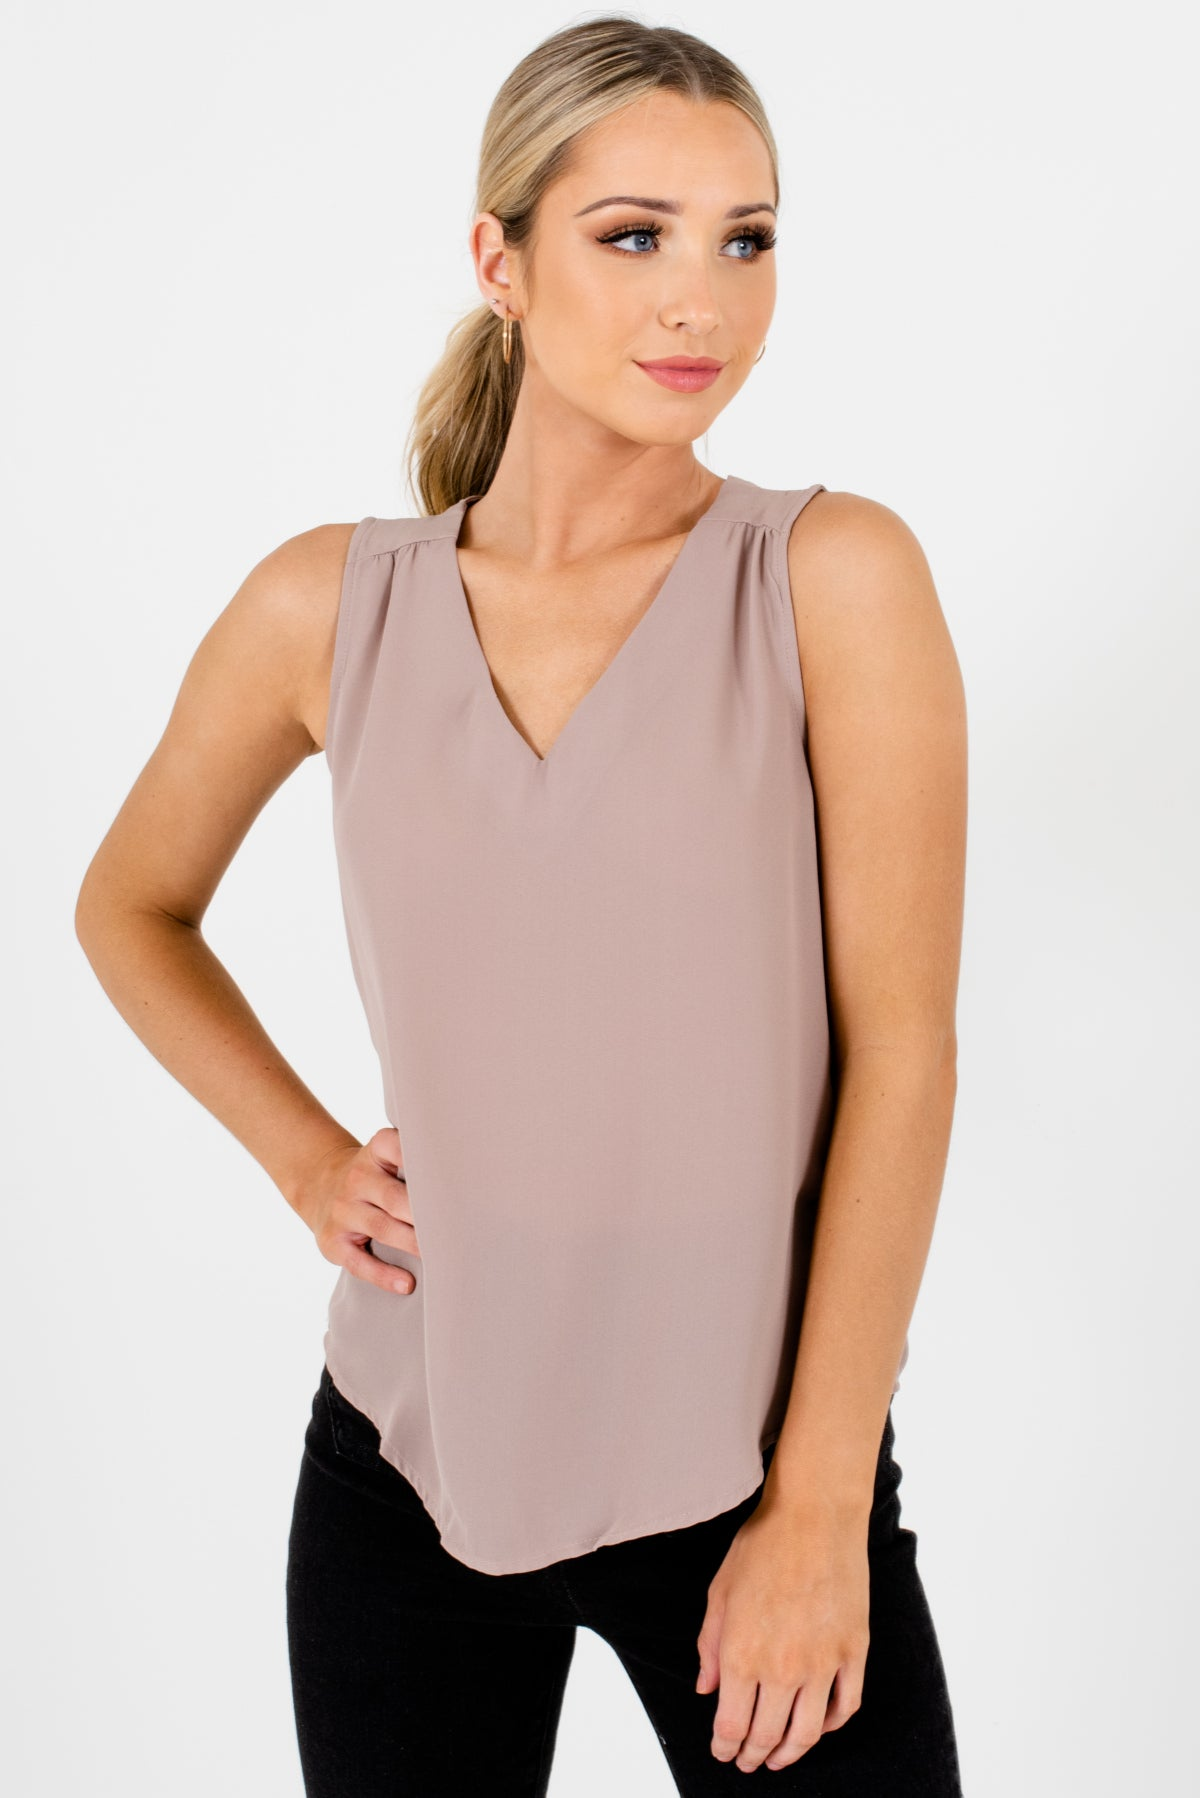 Beige Taupe V Neck Sleeveless Cut Out Back Office Appropriate Fashion Blouses